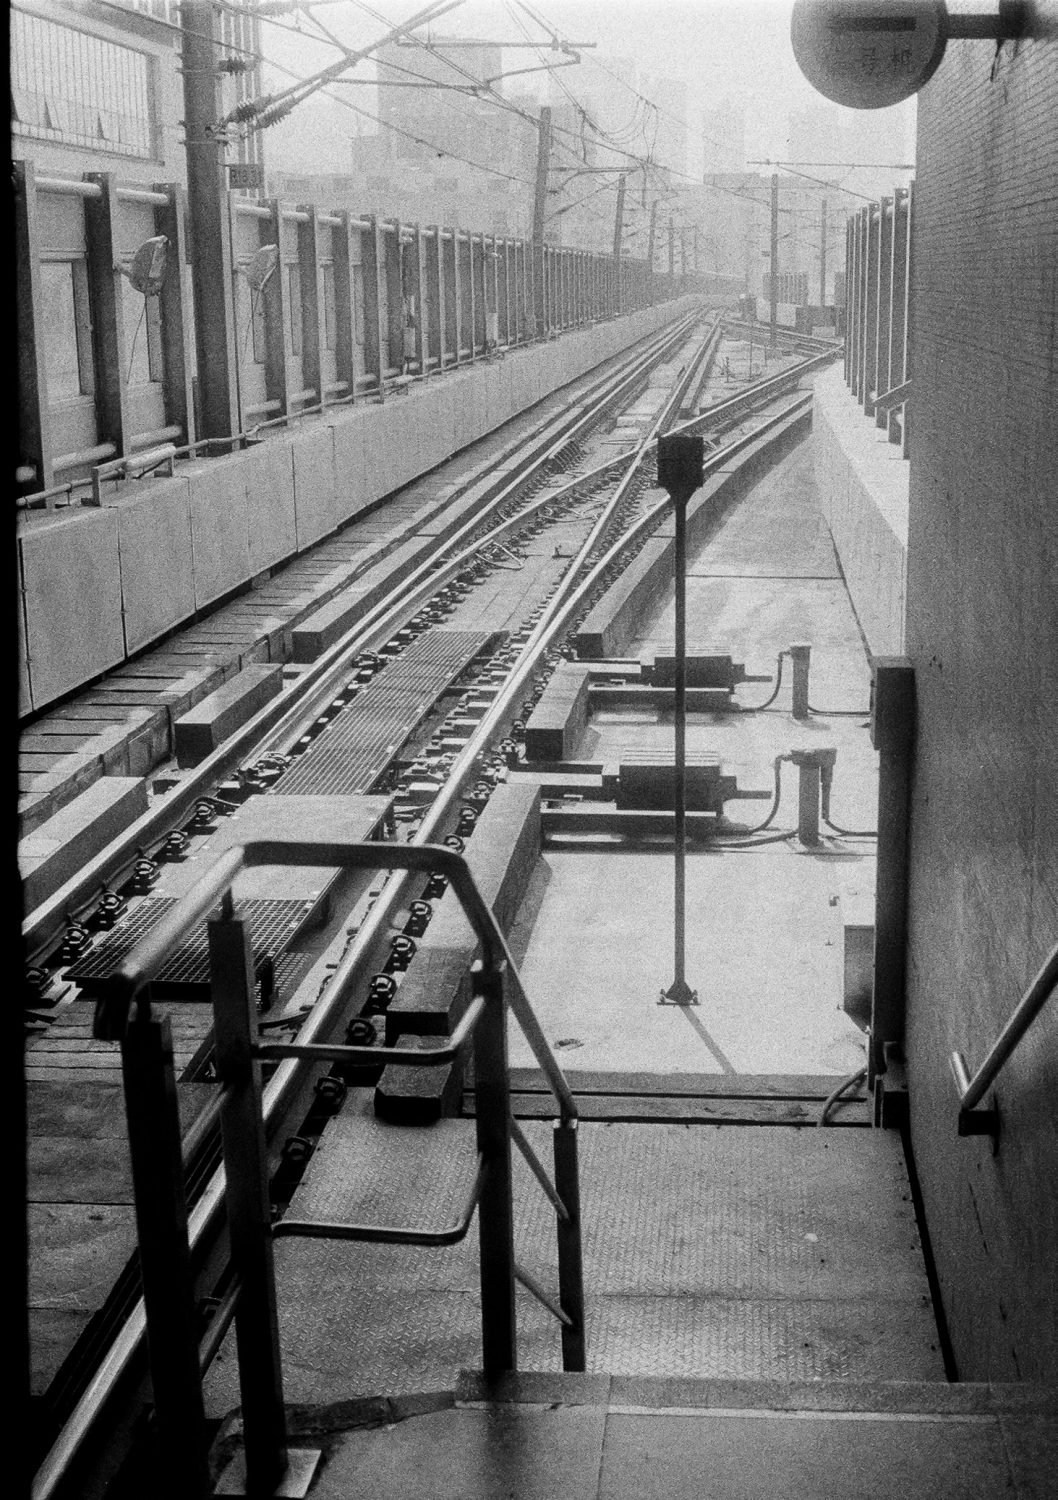 Railway tracks in black and white (Pic: Jay SE1)